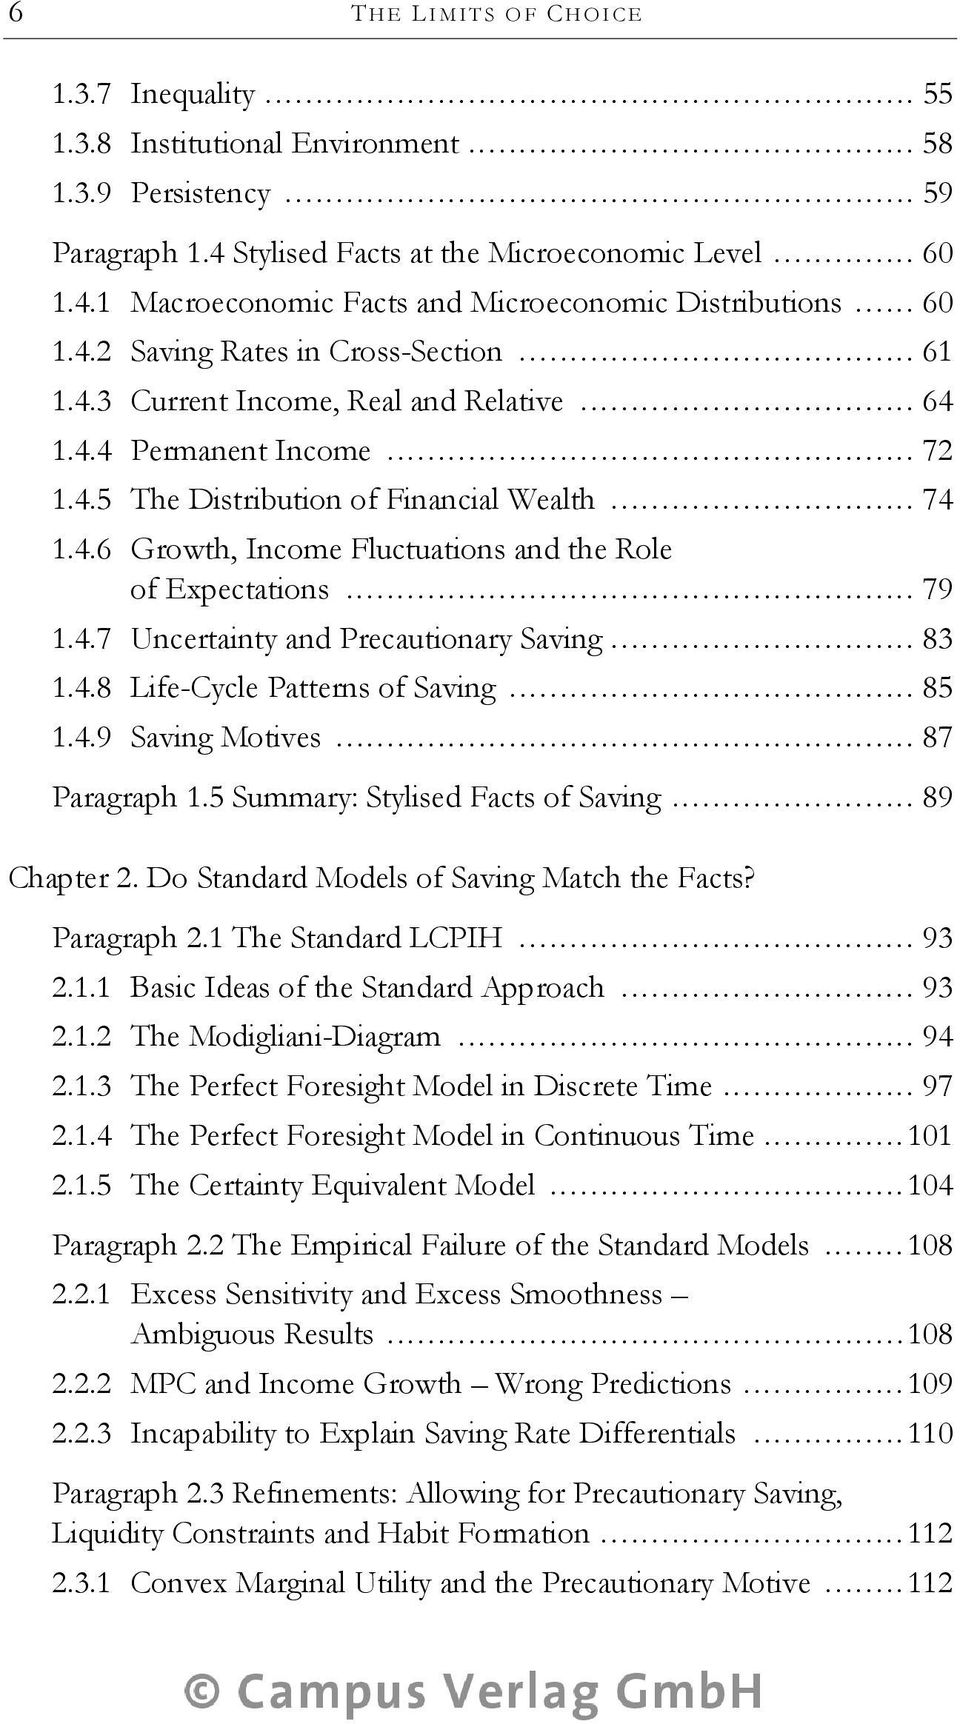 .. 79 1.4.7 Uncertainty and Precautionary Saving... 83 1.4.8 Life-Cycle Patterns of Saving... 85 1.4.9 Saving Motives... 87 Paragraph 1.5 Summary: Stylised Facts of Saving... 89 Chapter 2.